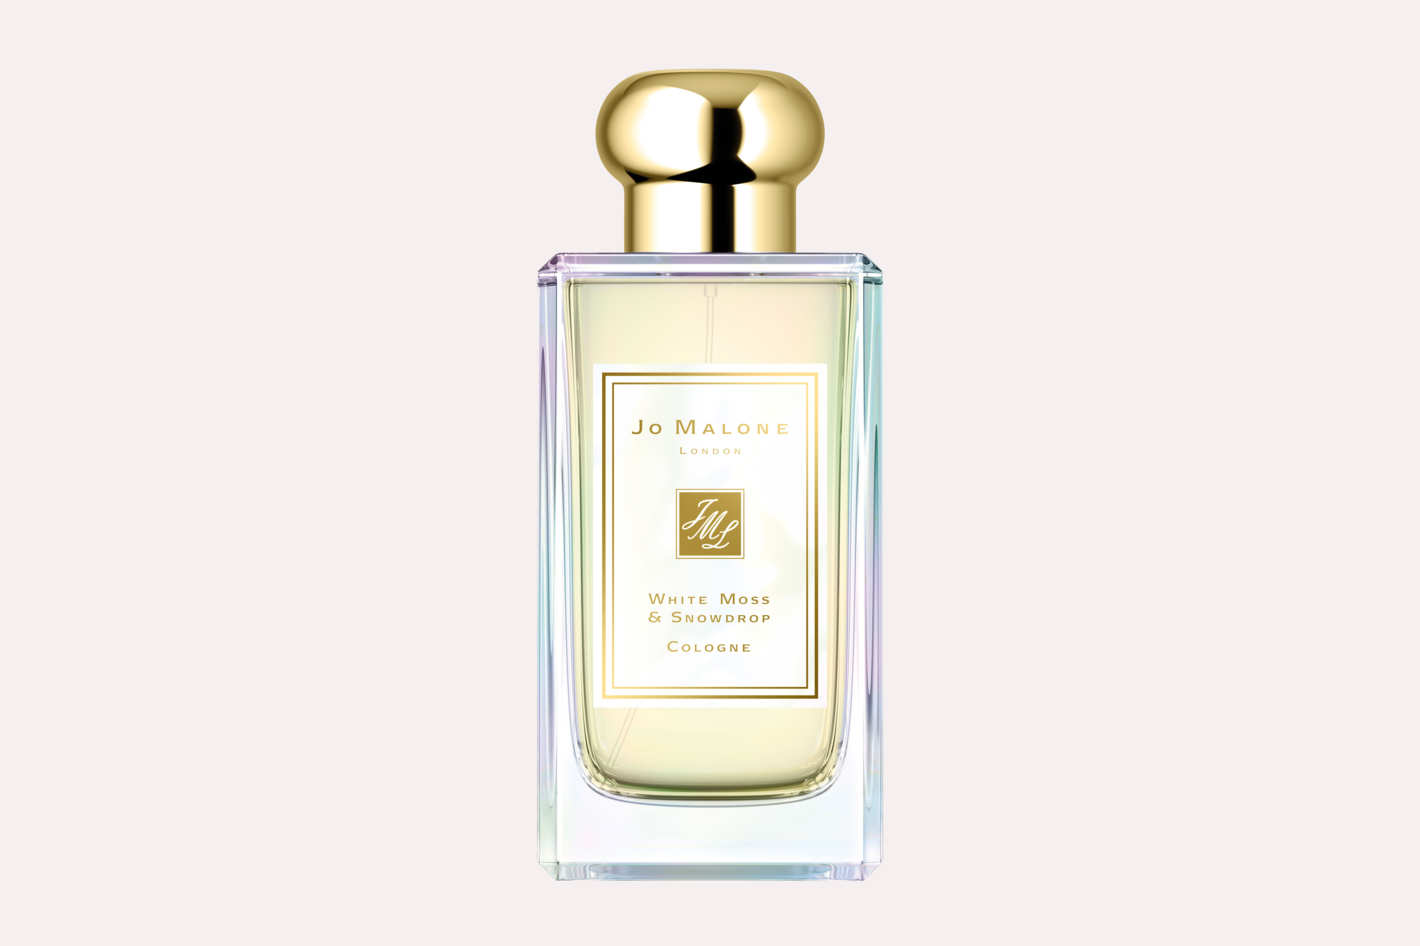 White Moss and Snowdrop Cologne, 3.4oz